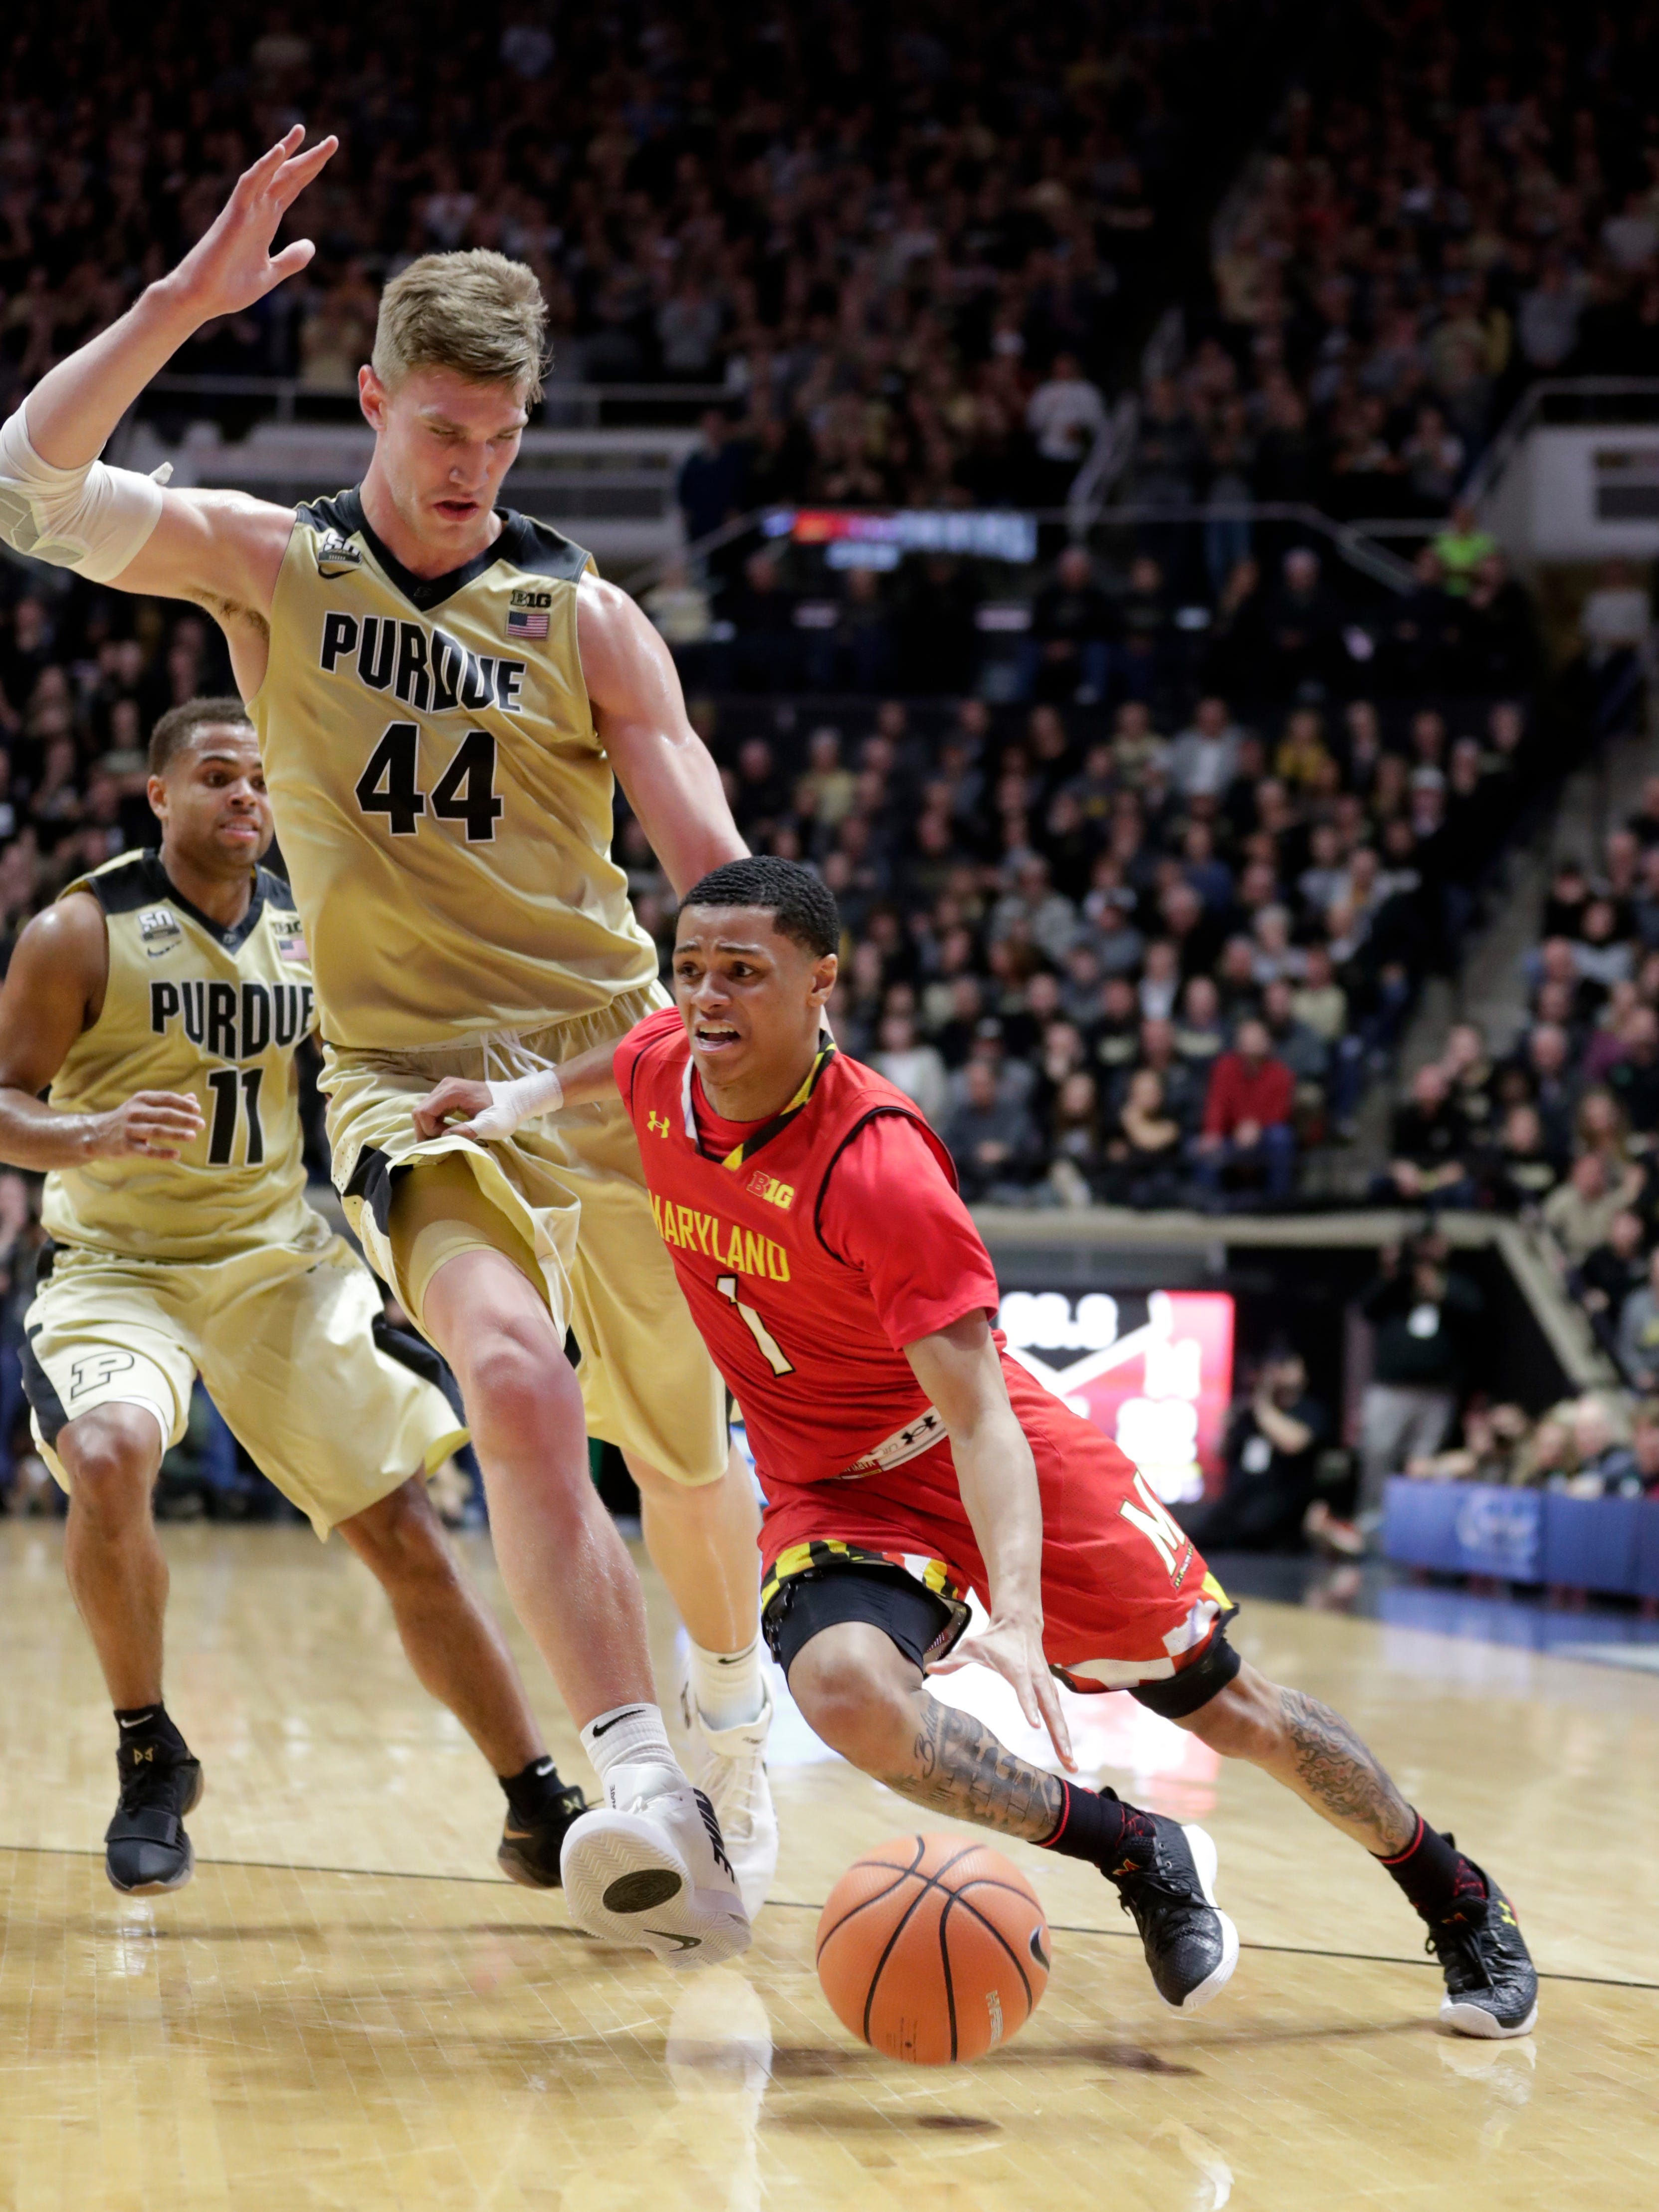 Here's how tall Purdue basketball's Isaac Haas is